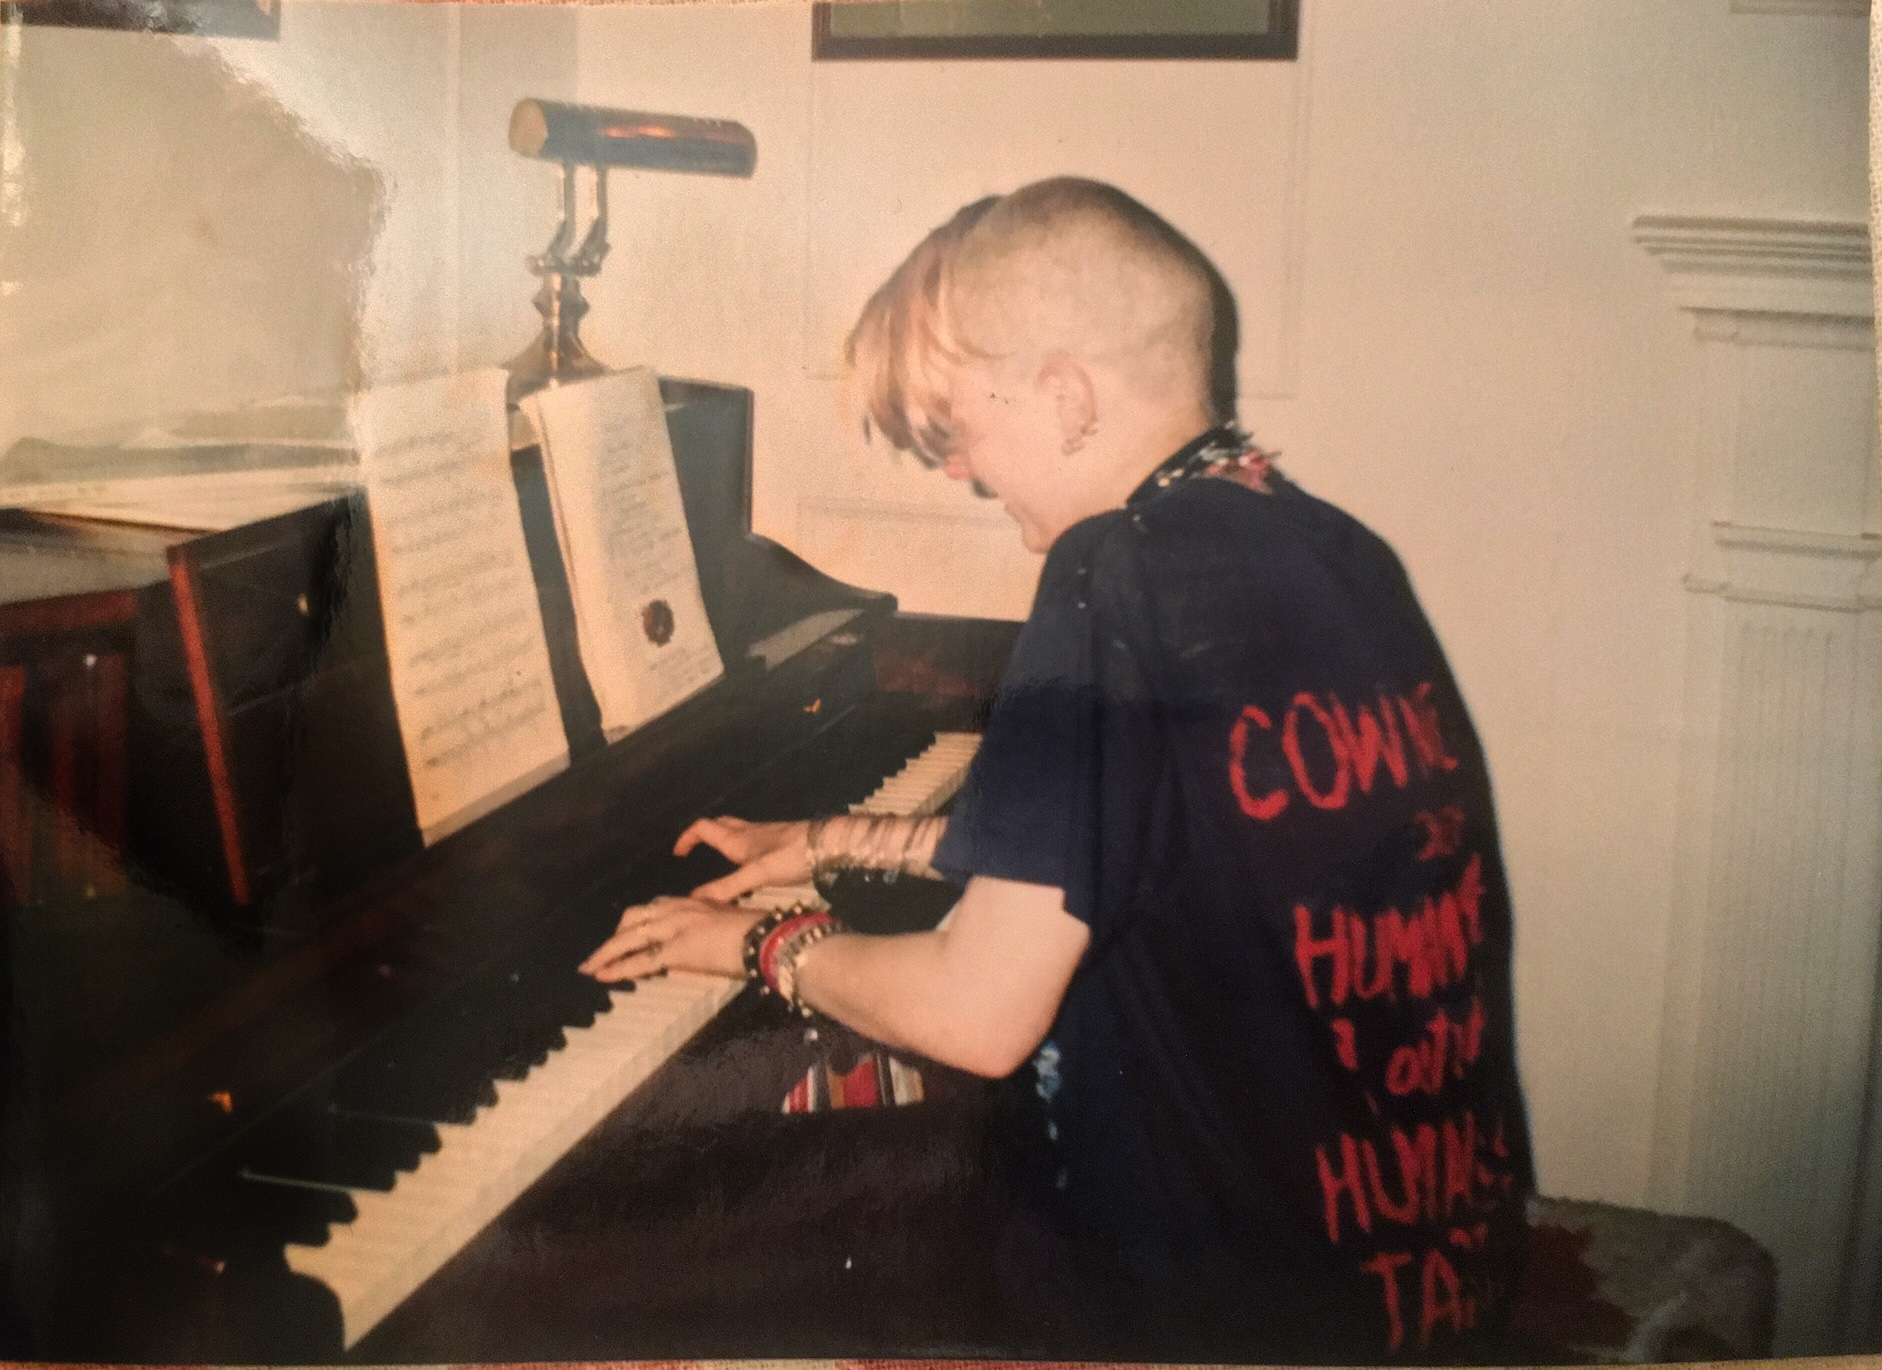 Here is adorable, teen-aged me, likely playing Rachmaninoff. (An adjudicator told me once that my bracelets got in the way of my performance sound quality. Luckily, my amazing piano teacher told me that it wasn't an actual issue and that I could wear what whatever I wanted..It's as though he really understood me.)